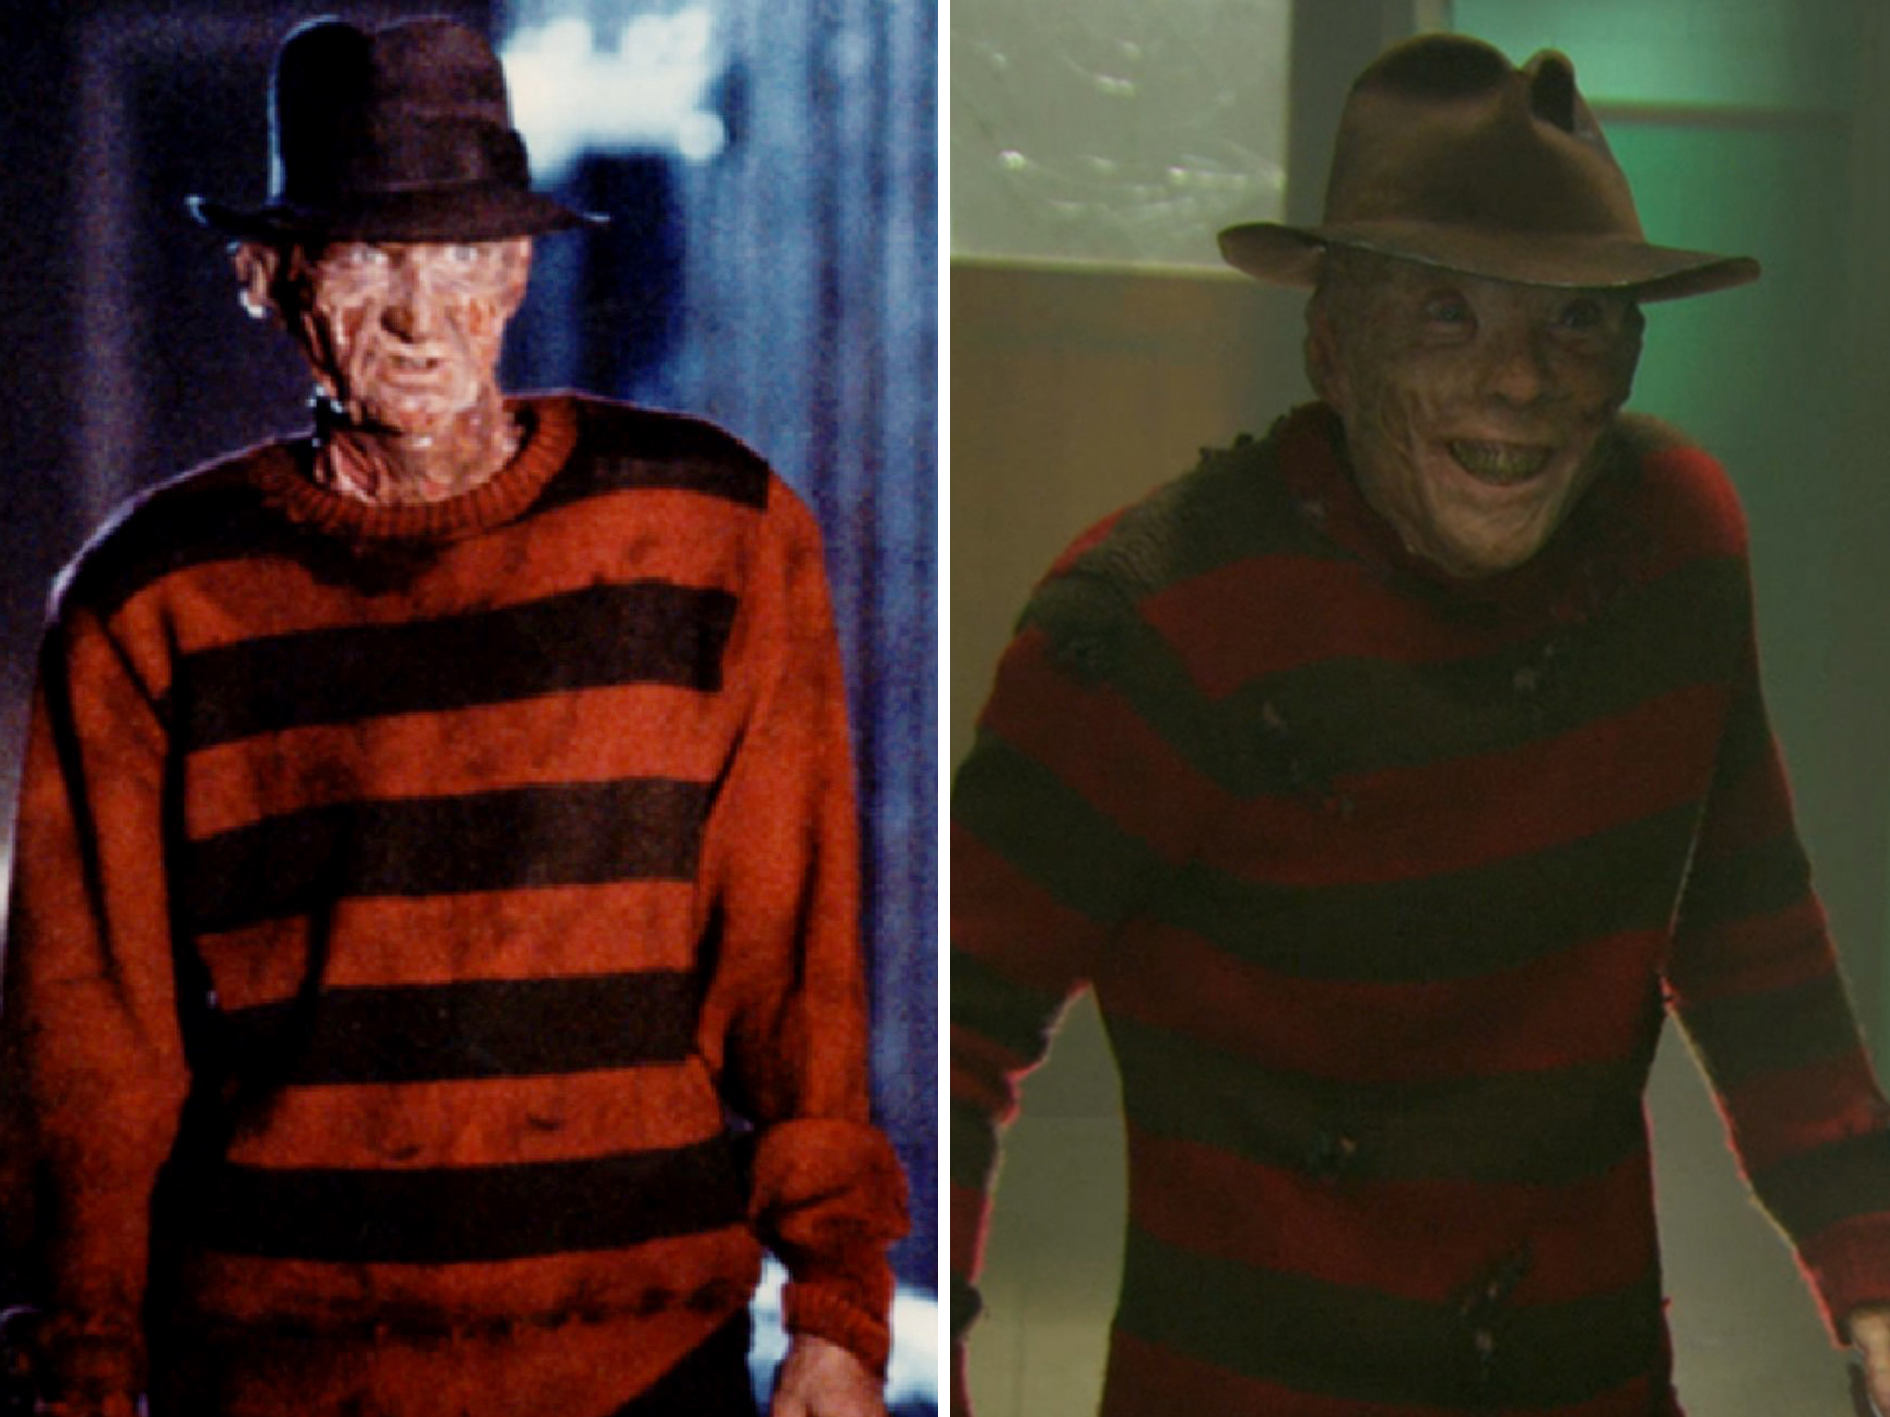 Nightmare on Elm Street Awful Remakes Of Classic 80s Films That Should Have Been Left Unmade